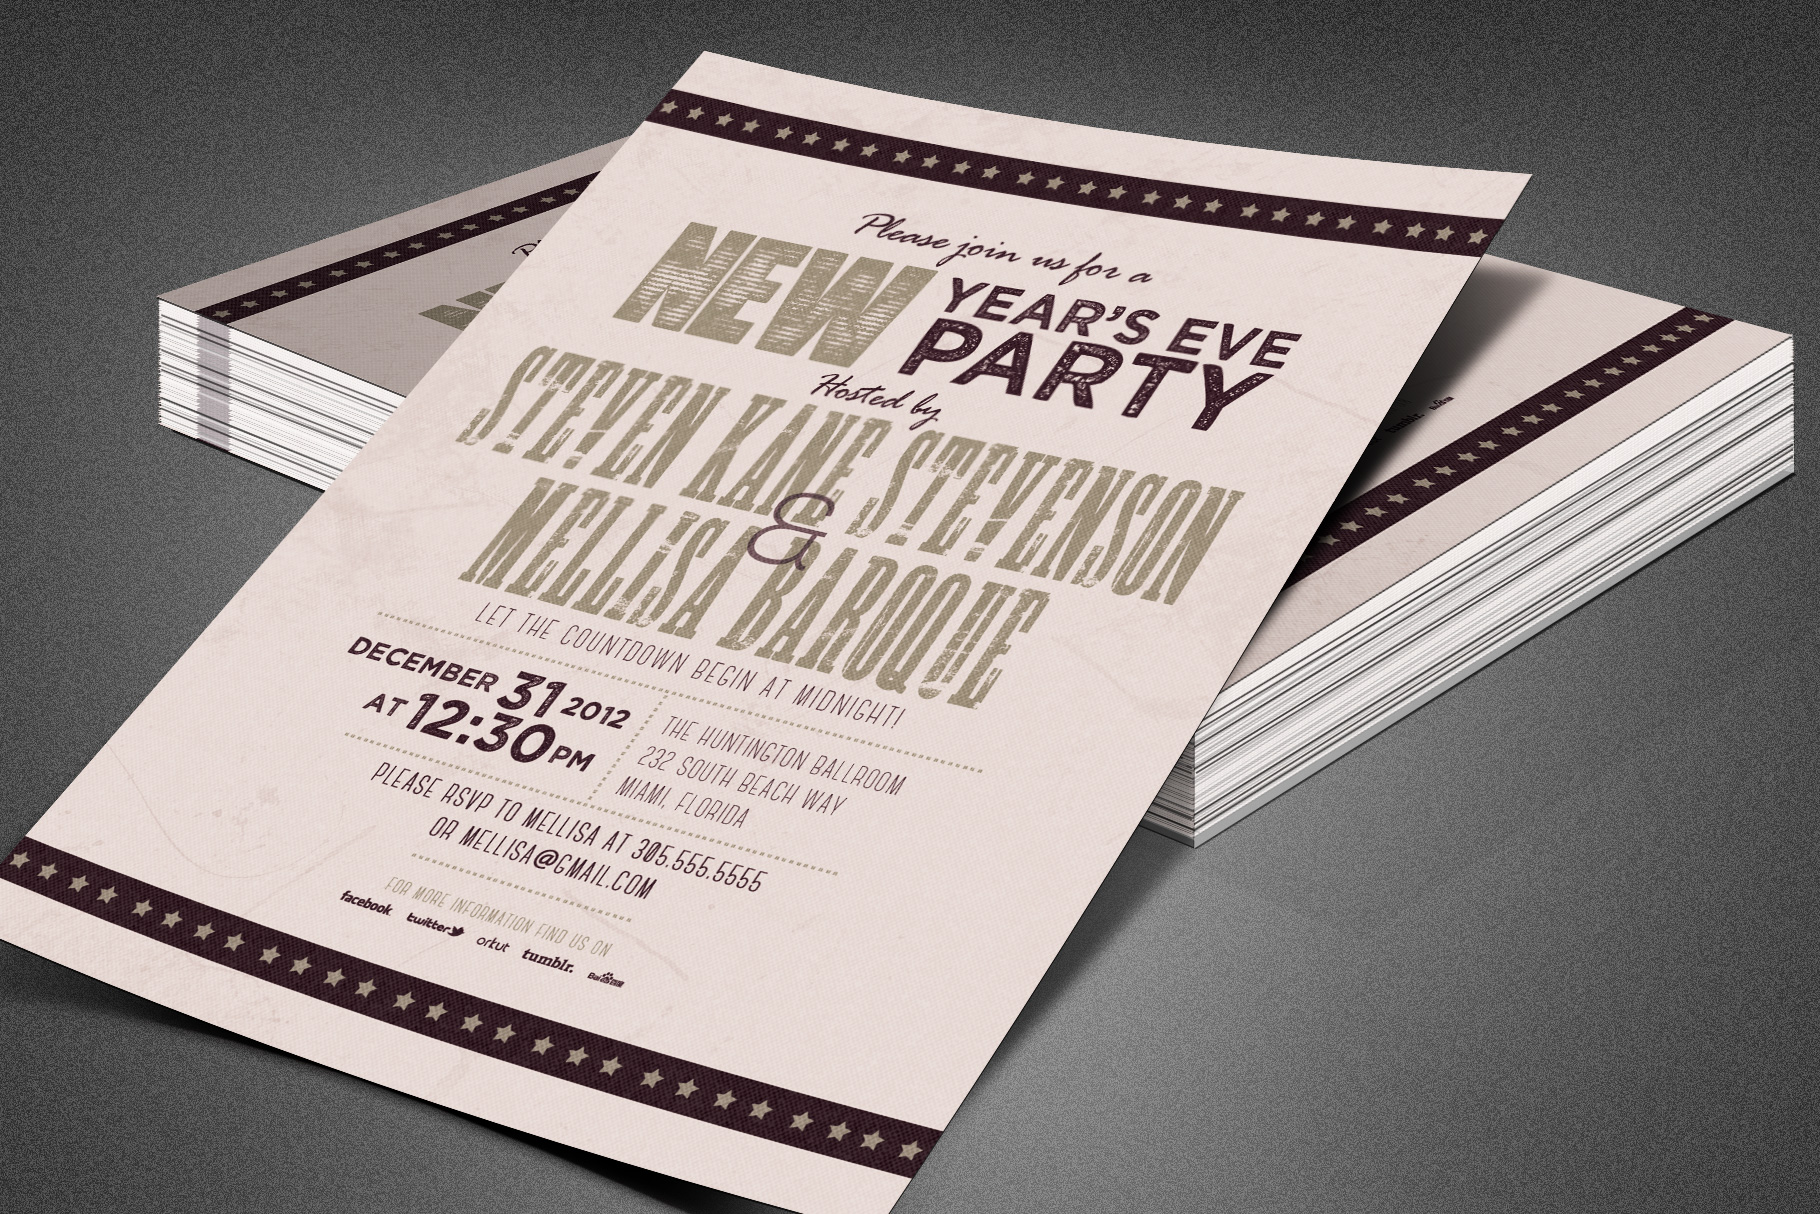 Retro New Year Party Invite Card Template example image 8